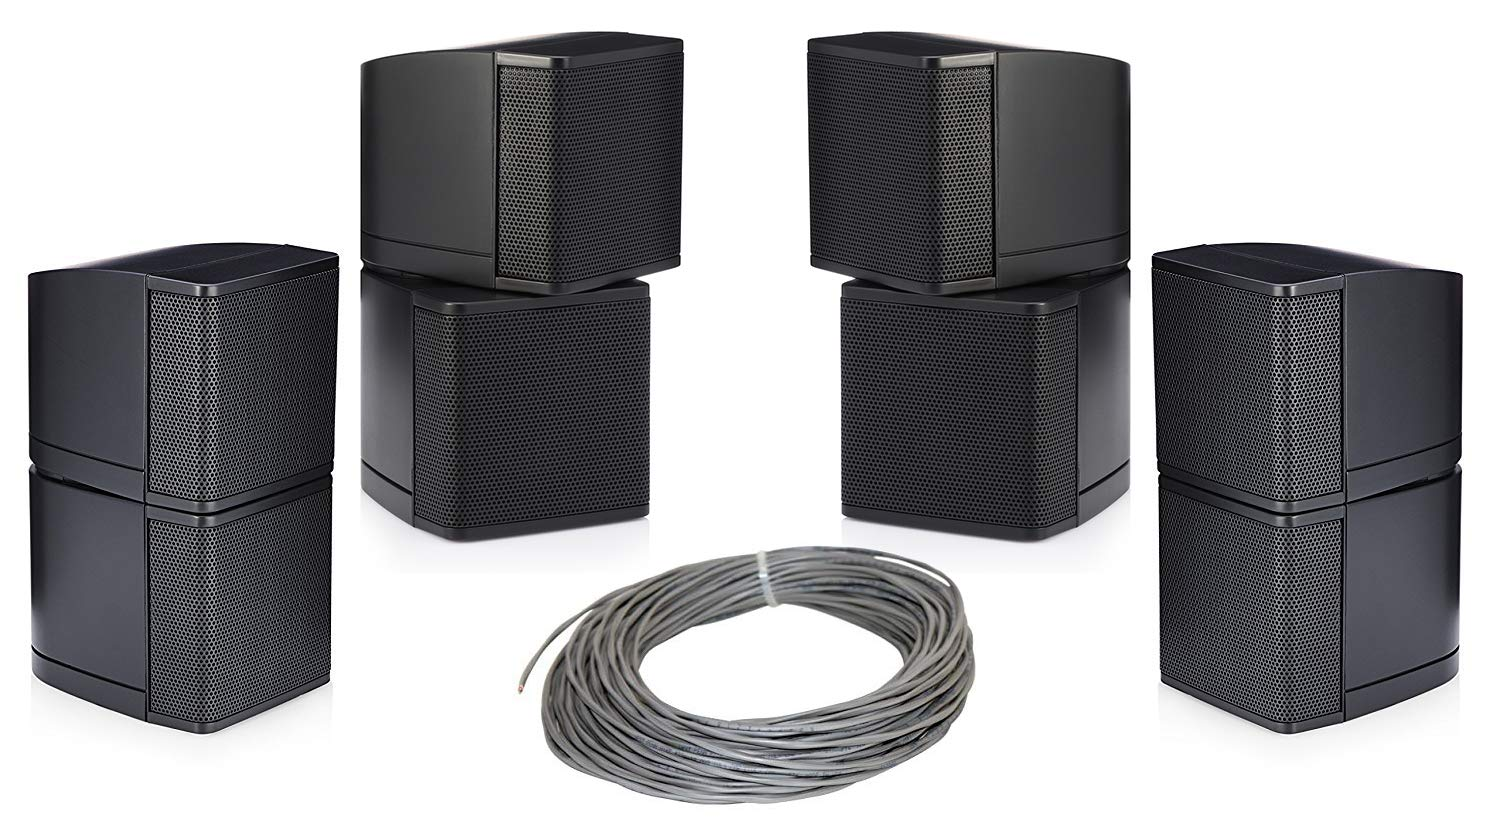 Pure Resonance Audio MC2.5B Mini Cube 2.5 inch Speaker Bundle with Installation Wire - Home Value Pack (5 Items) (Black)